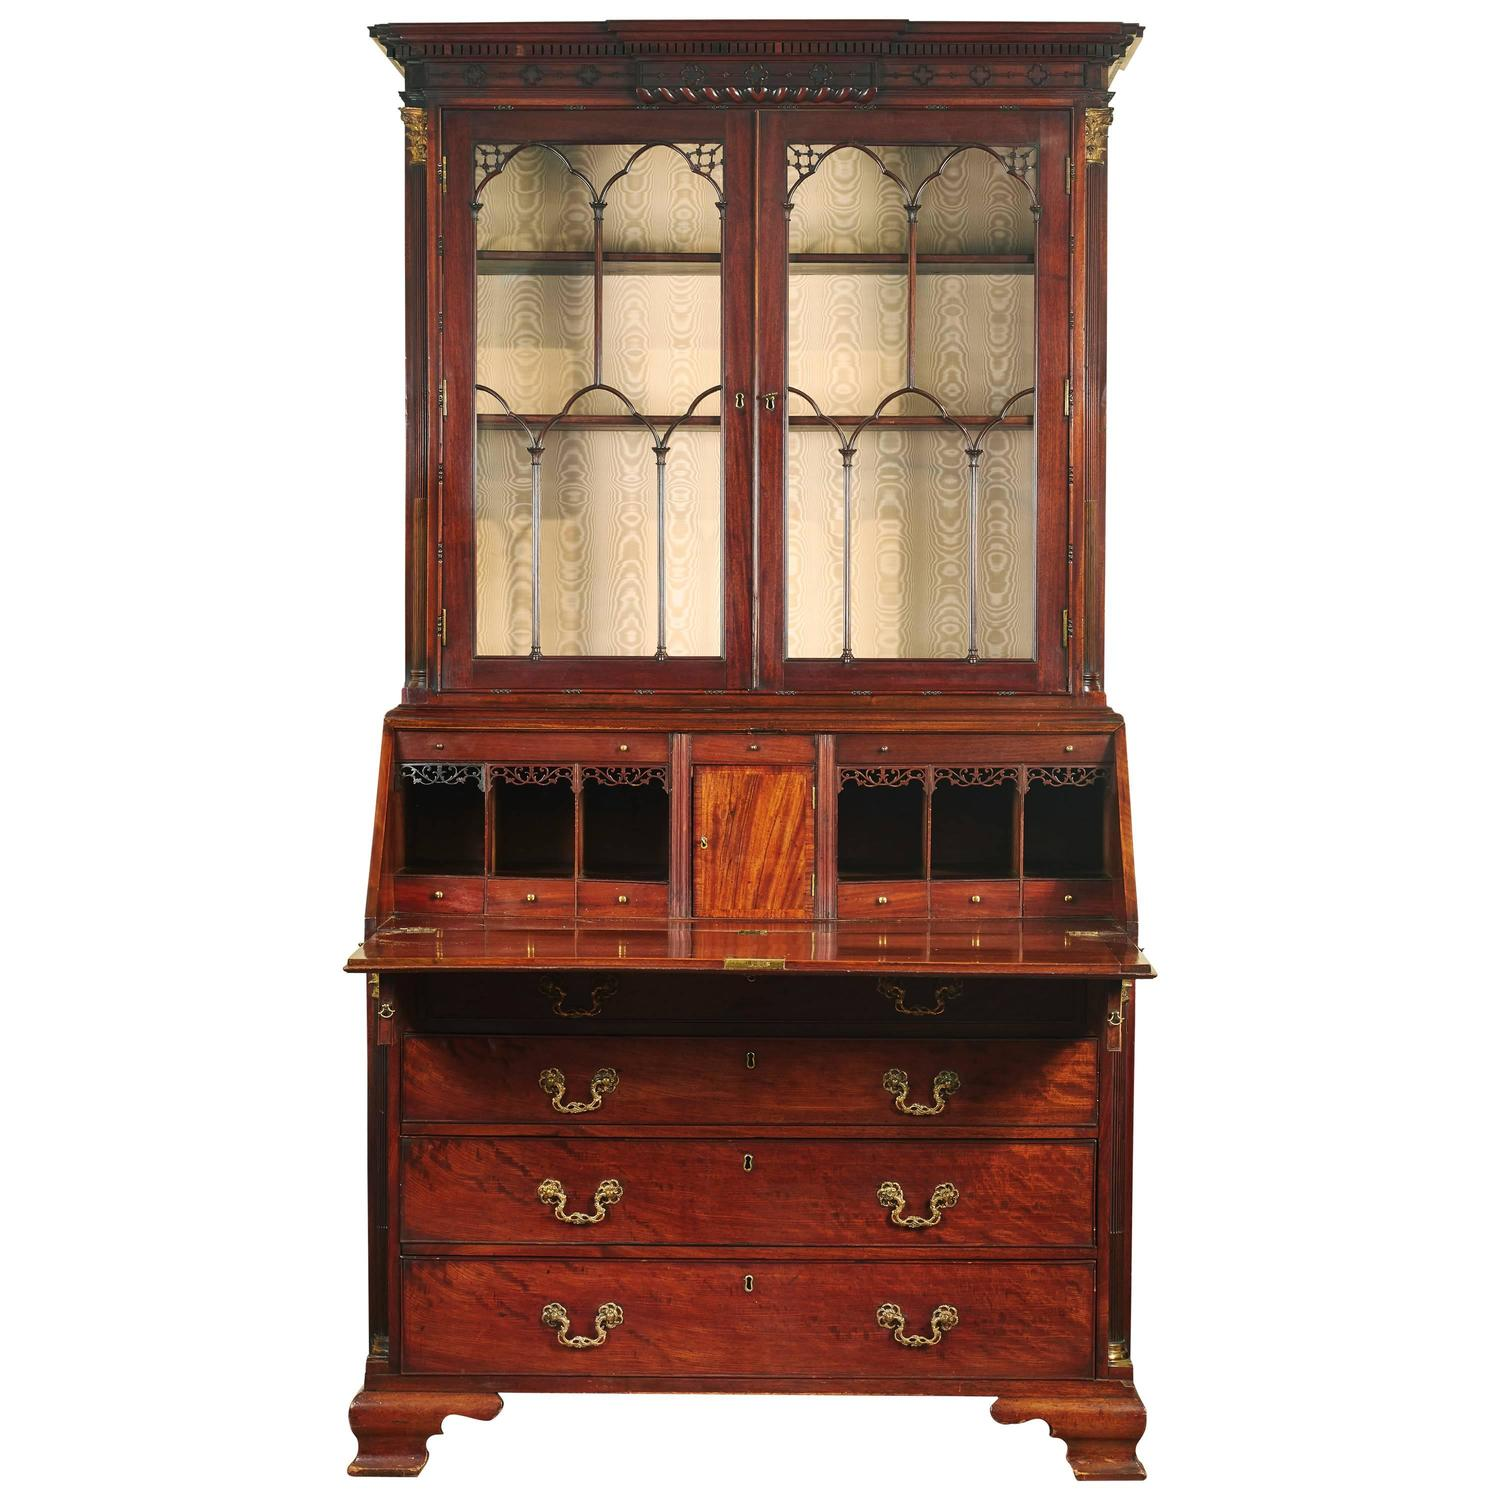 fine george iii mahogany brass mounted bureau bookcase at 1stdibs. Black Bedroom Furniture Sets. Home Design Ideas